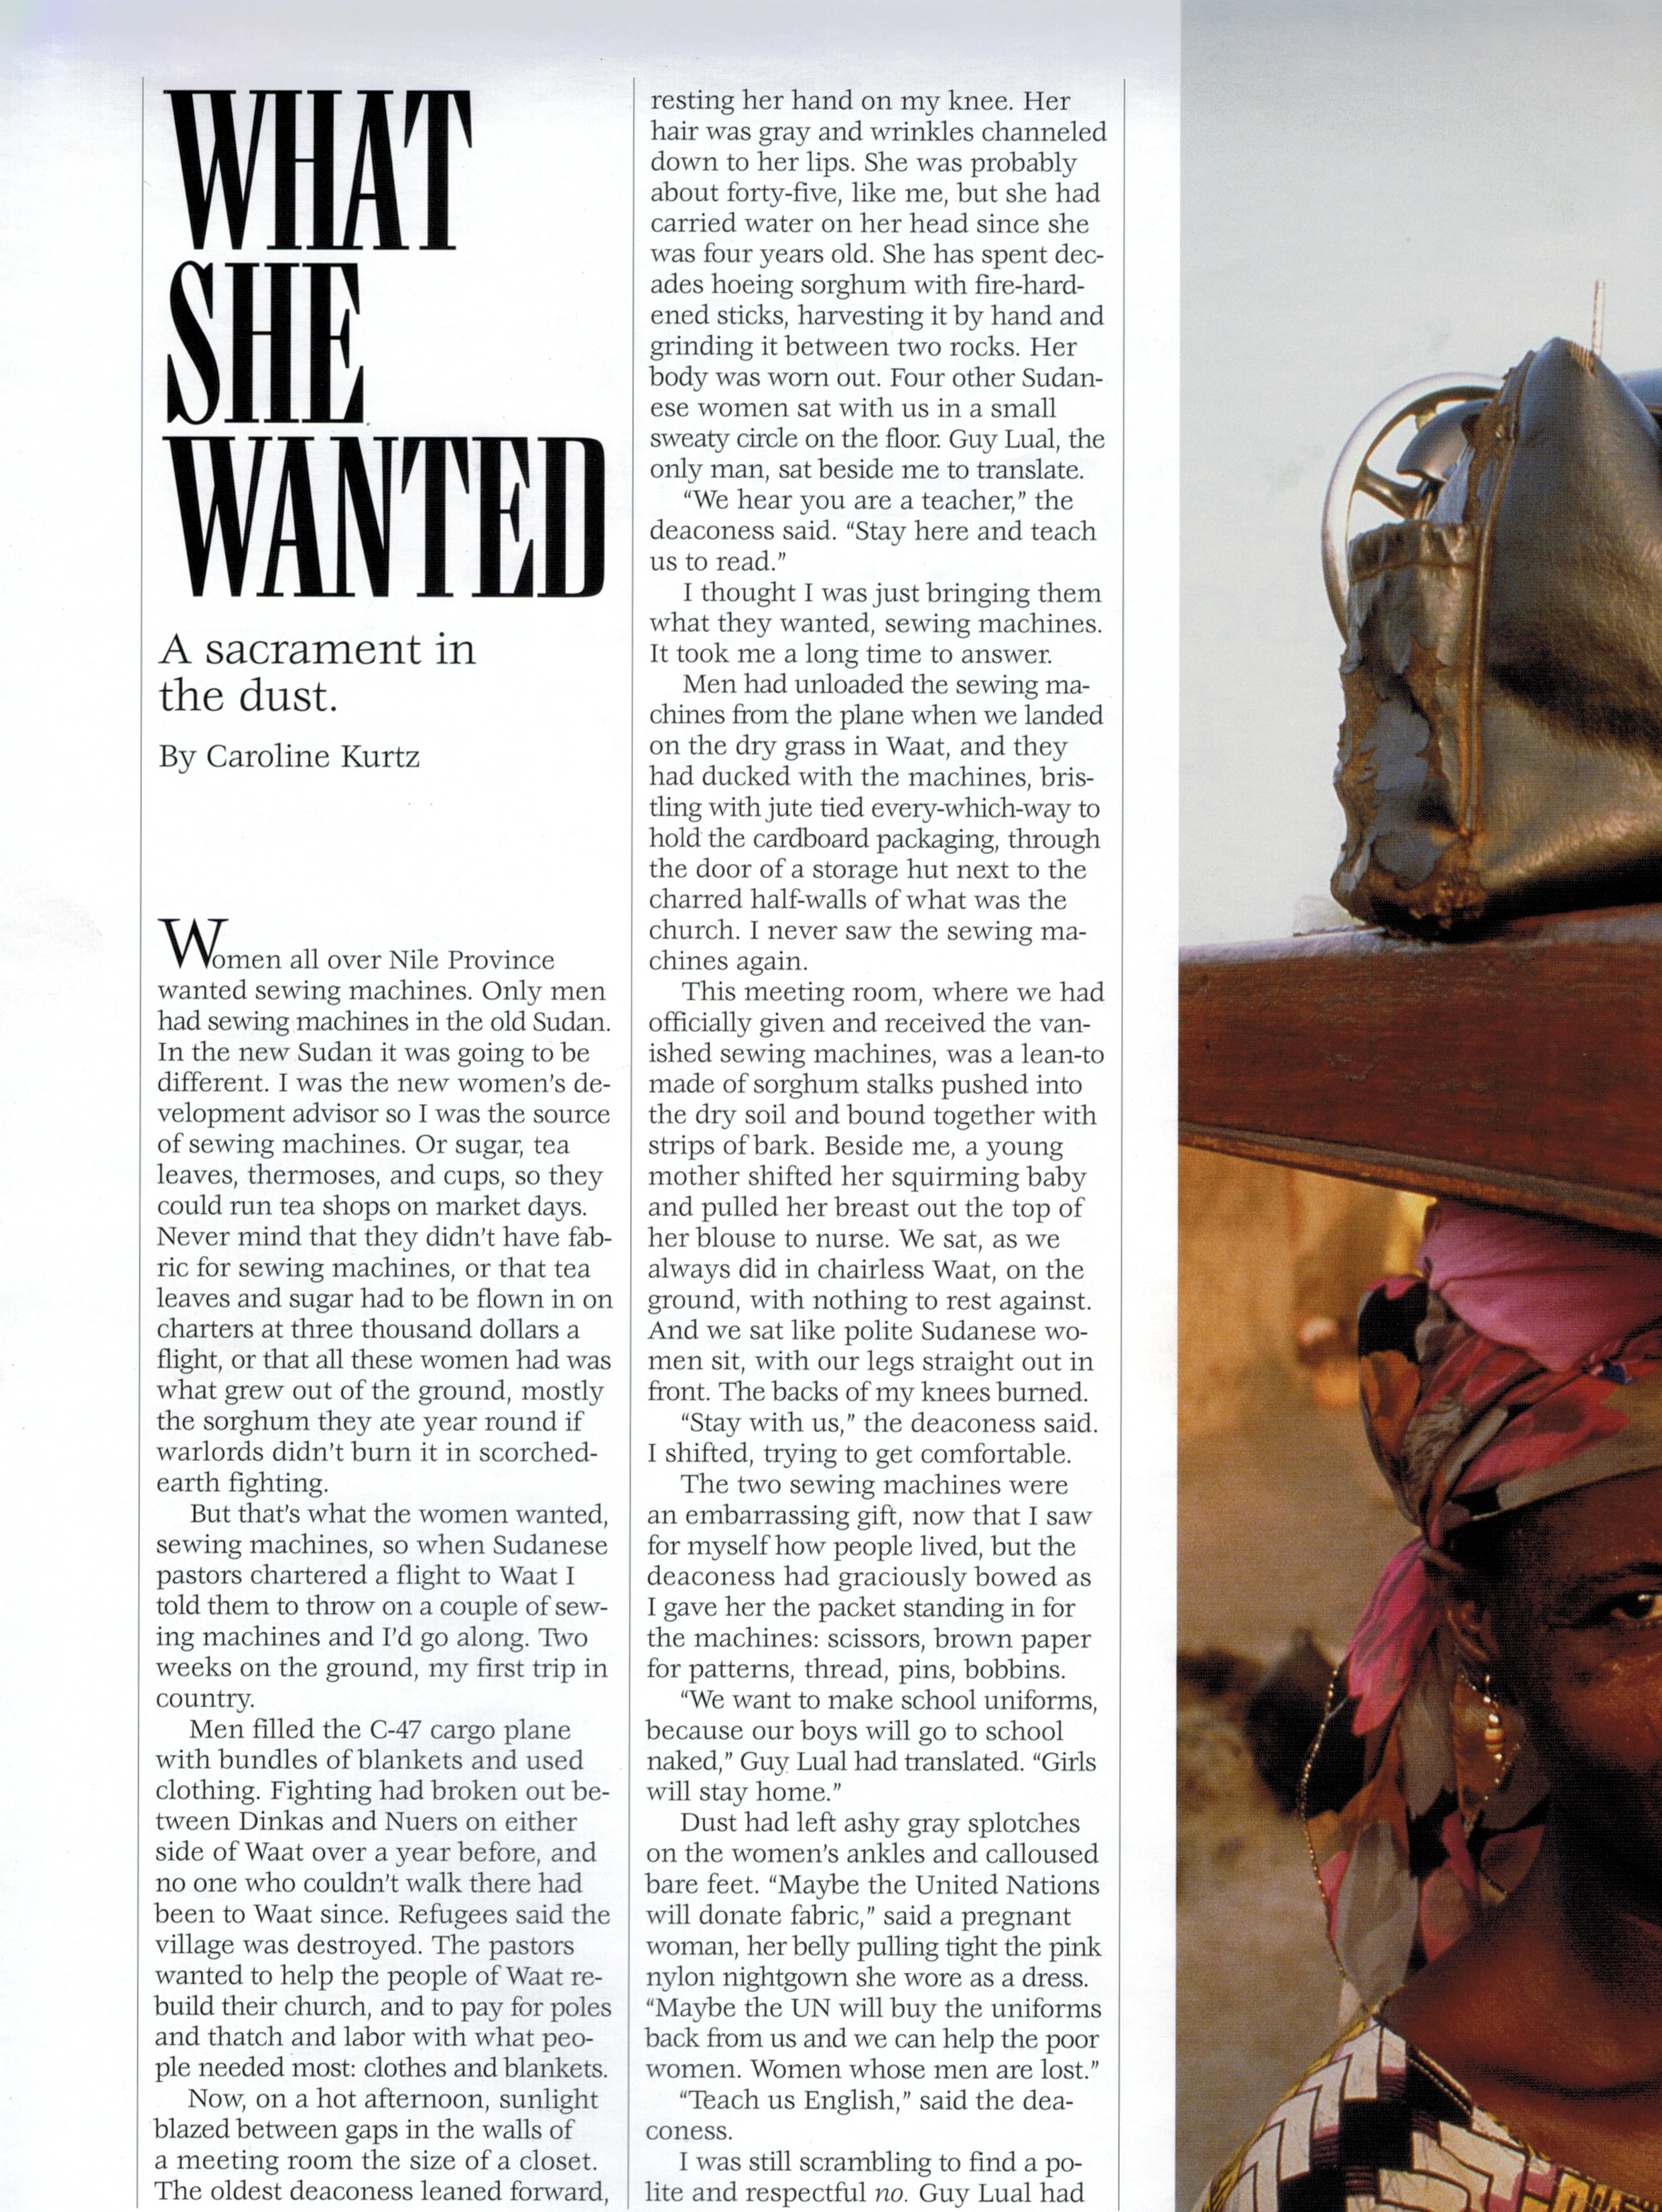 This is the first page of my story, What She Wanted, published in Portland Magazine.